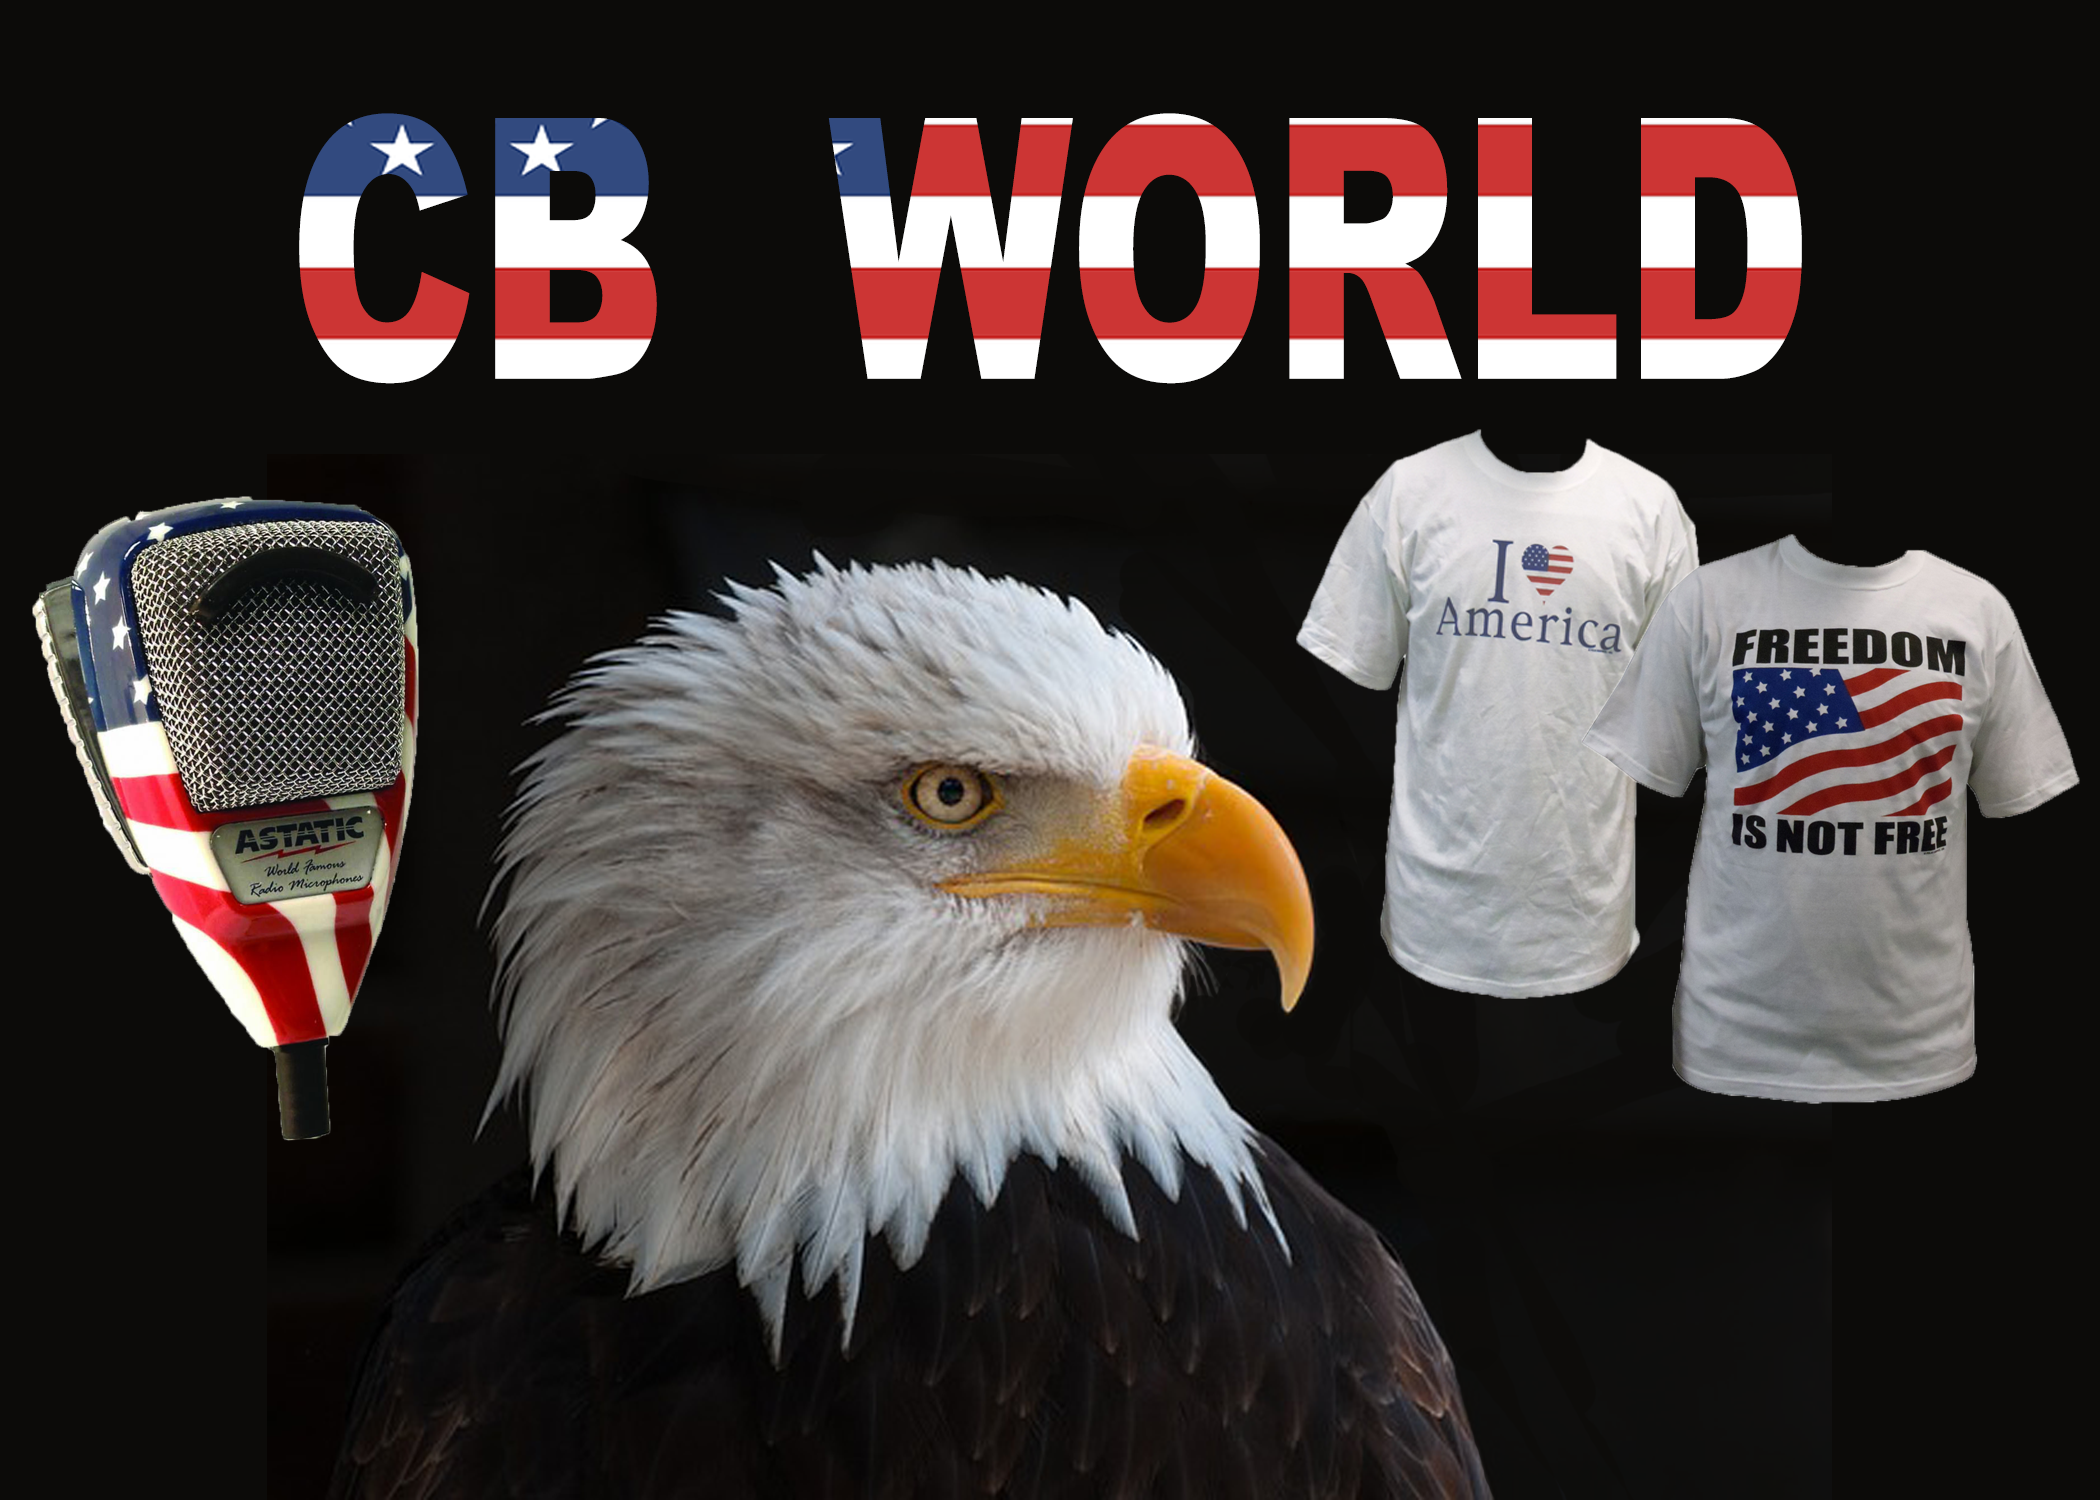 CB World Patriotism Products